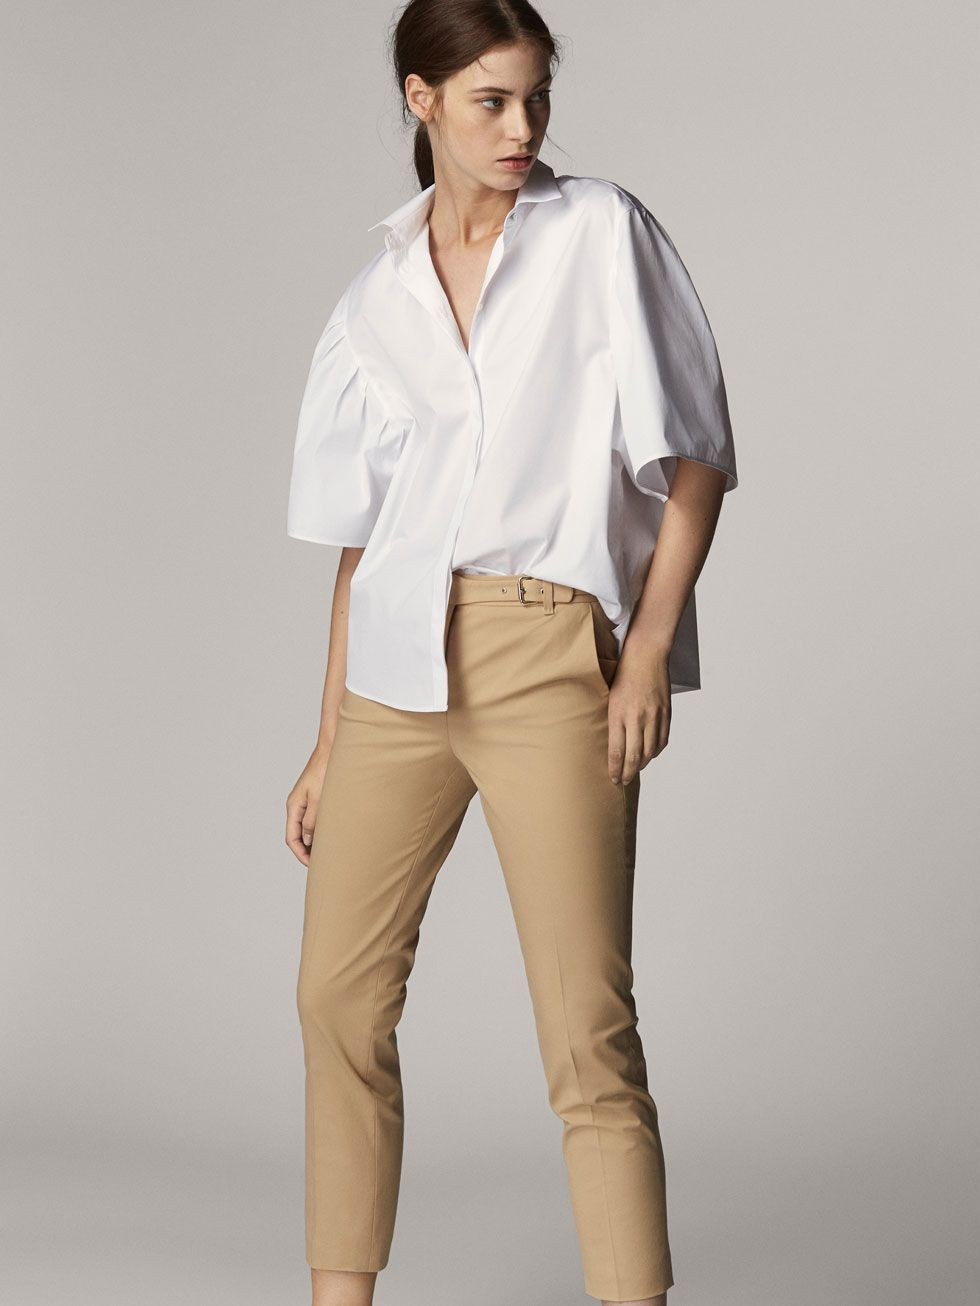 NEW WOMAN/'S LADIES LIGHTWEIGHT 100/% COTTON HOLIDAY COOL BLOUSE-2 COLOURS!